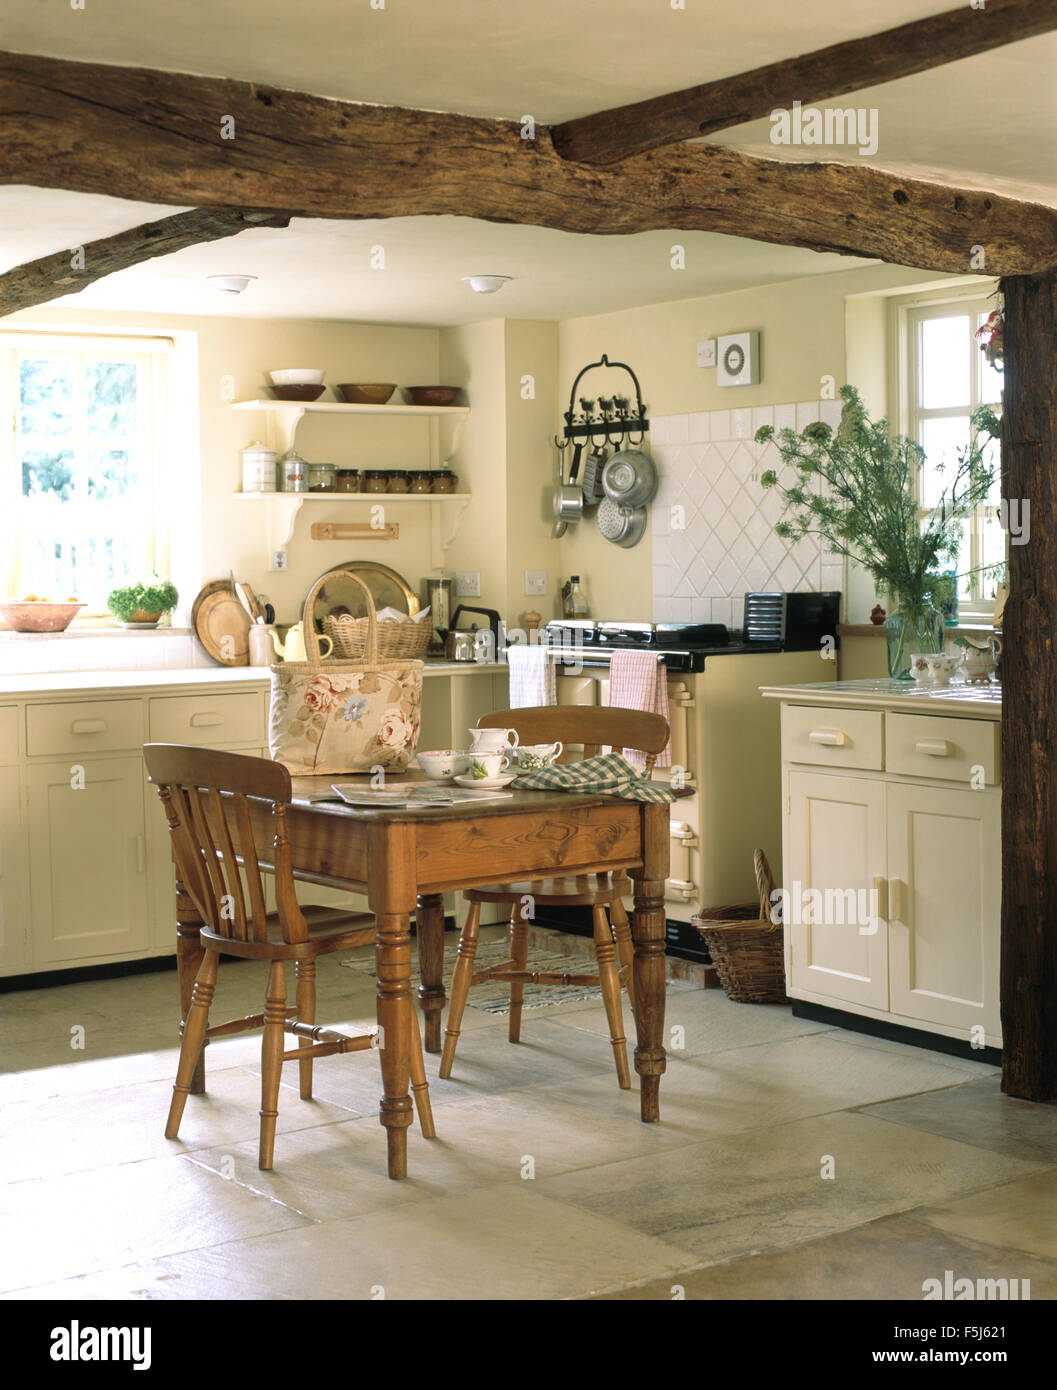 pine kitchen chairs ireland double adirondack chair vintage dining table and in a cream cottage